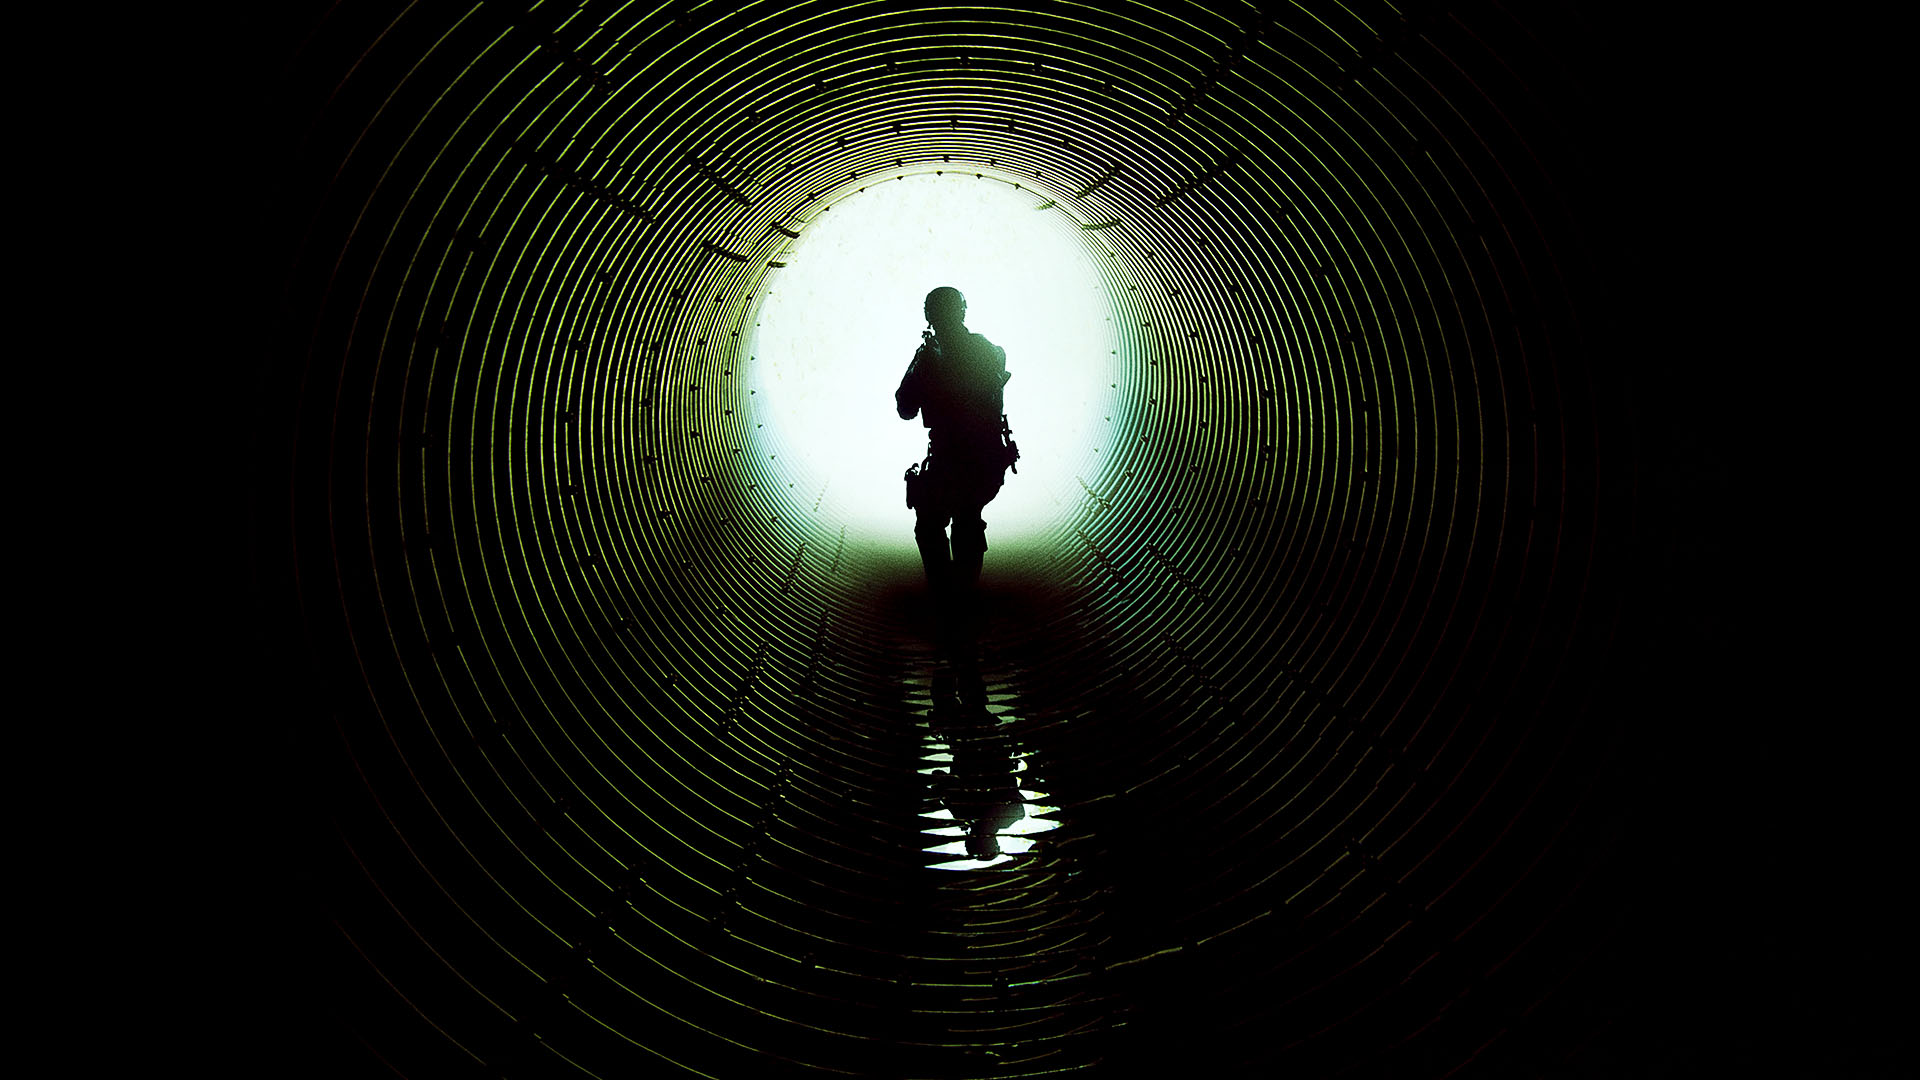 14 sicario hd wallpapers backgrounds wallpaper abyss - Sicario wallpaper ...